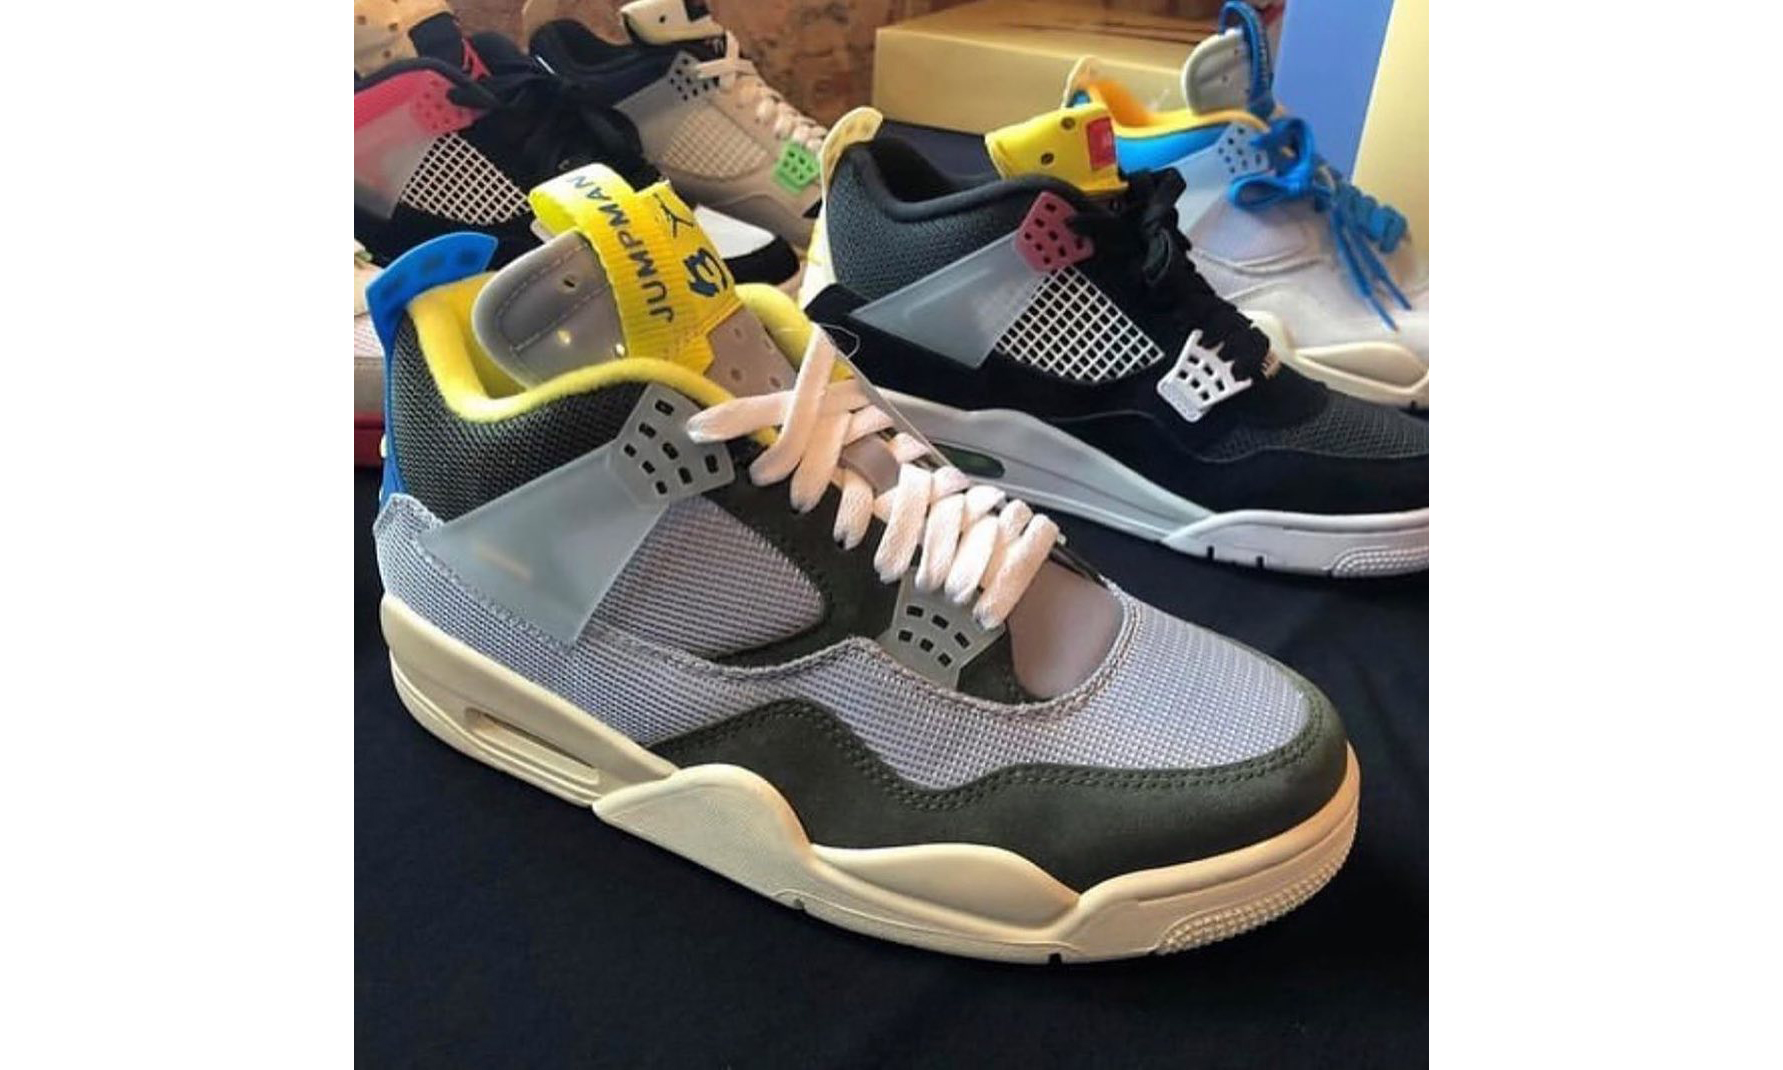 Union x Air Jordan IV 更多 Sample 配色曝光